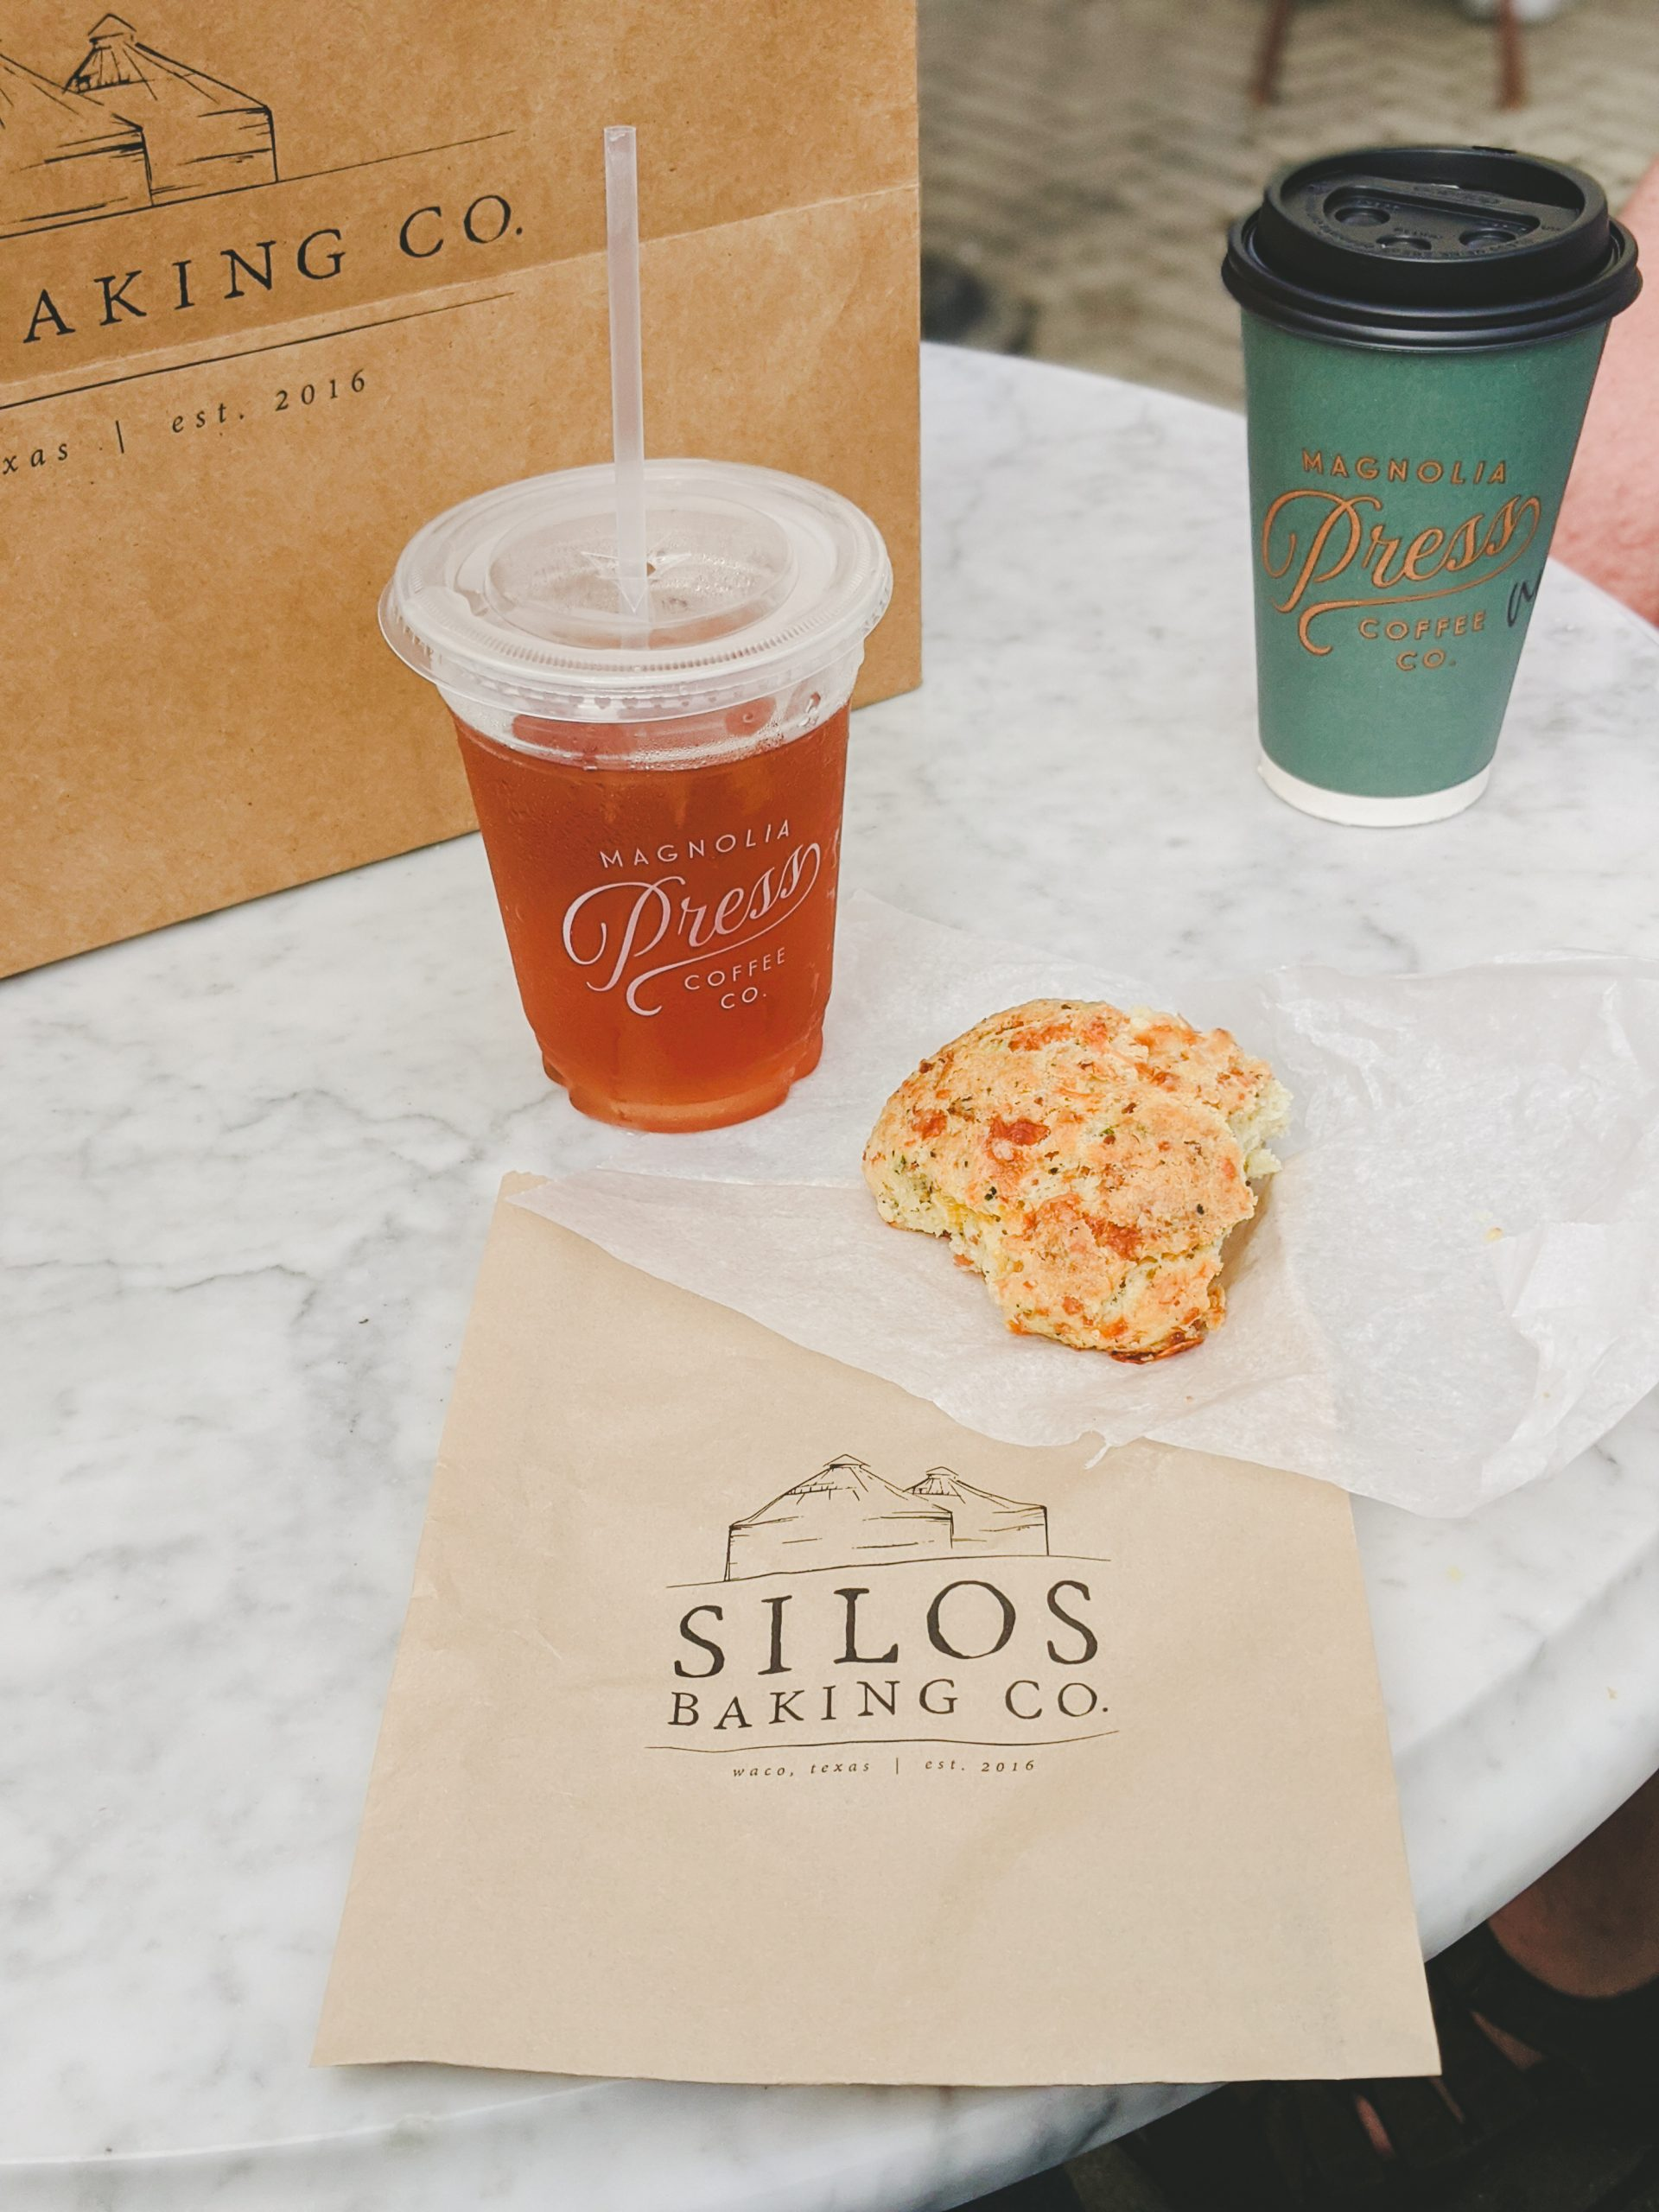 silos baking co. drinks and biscuit